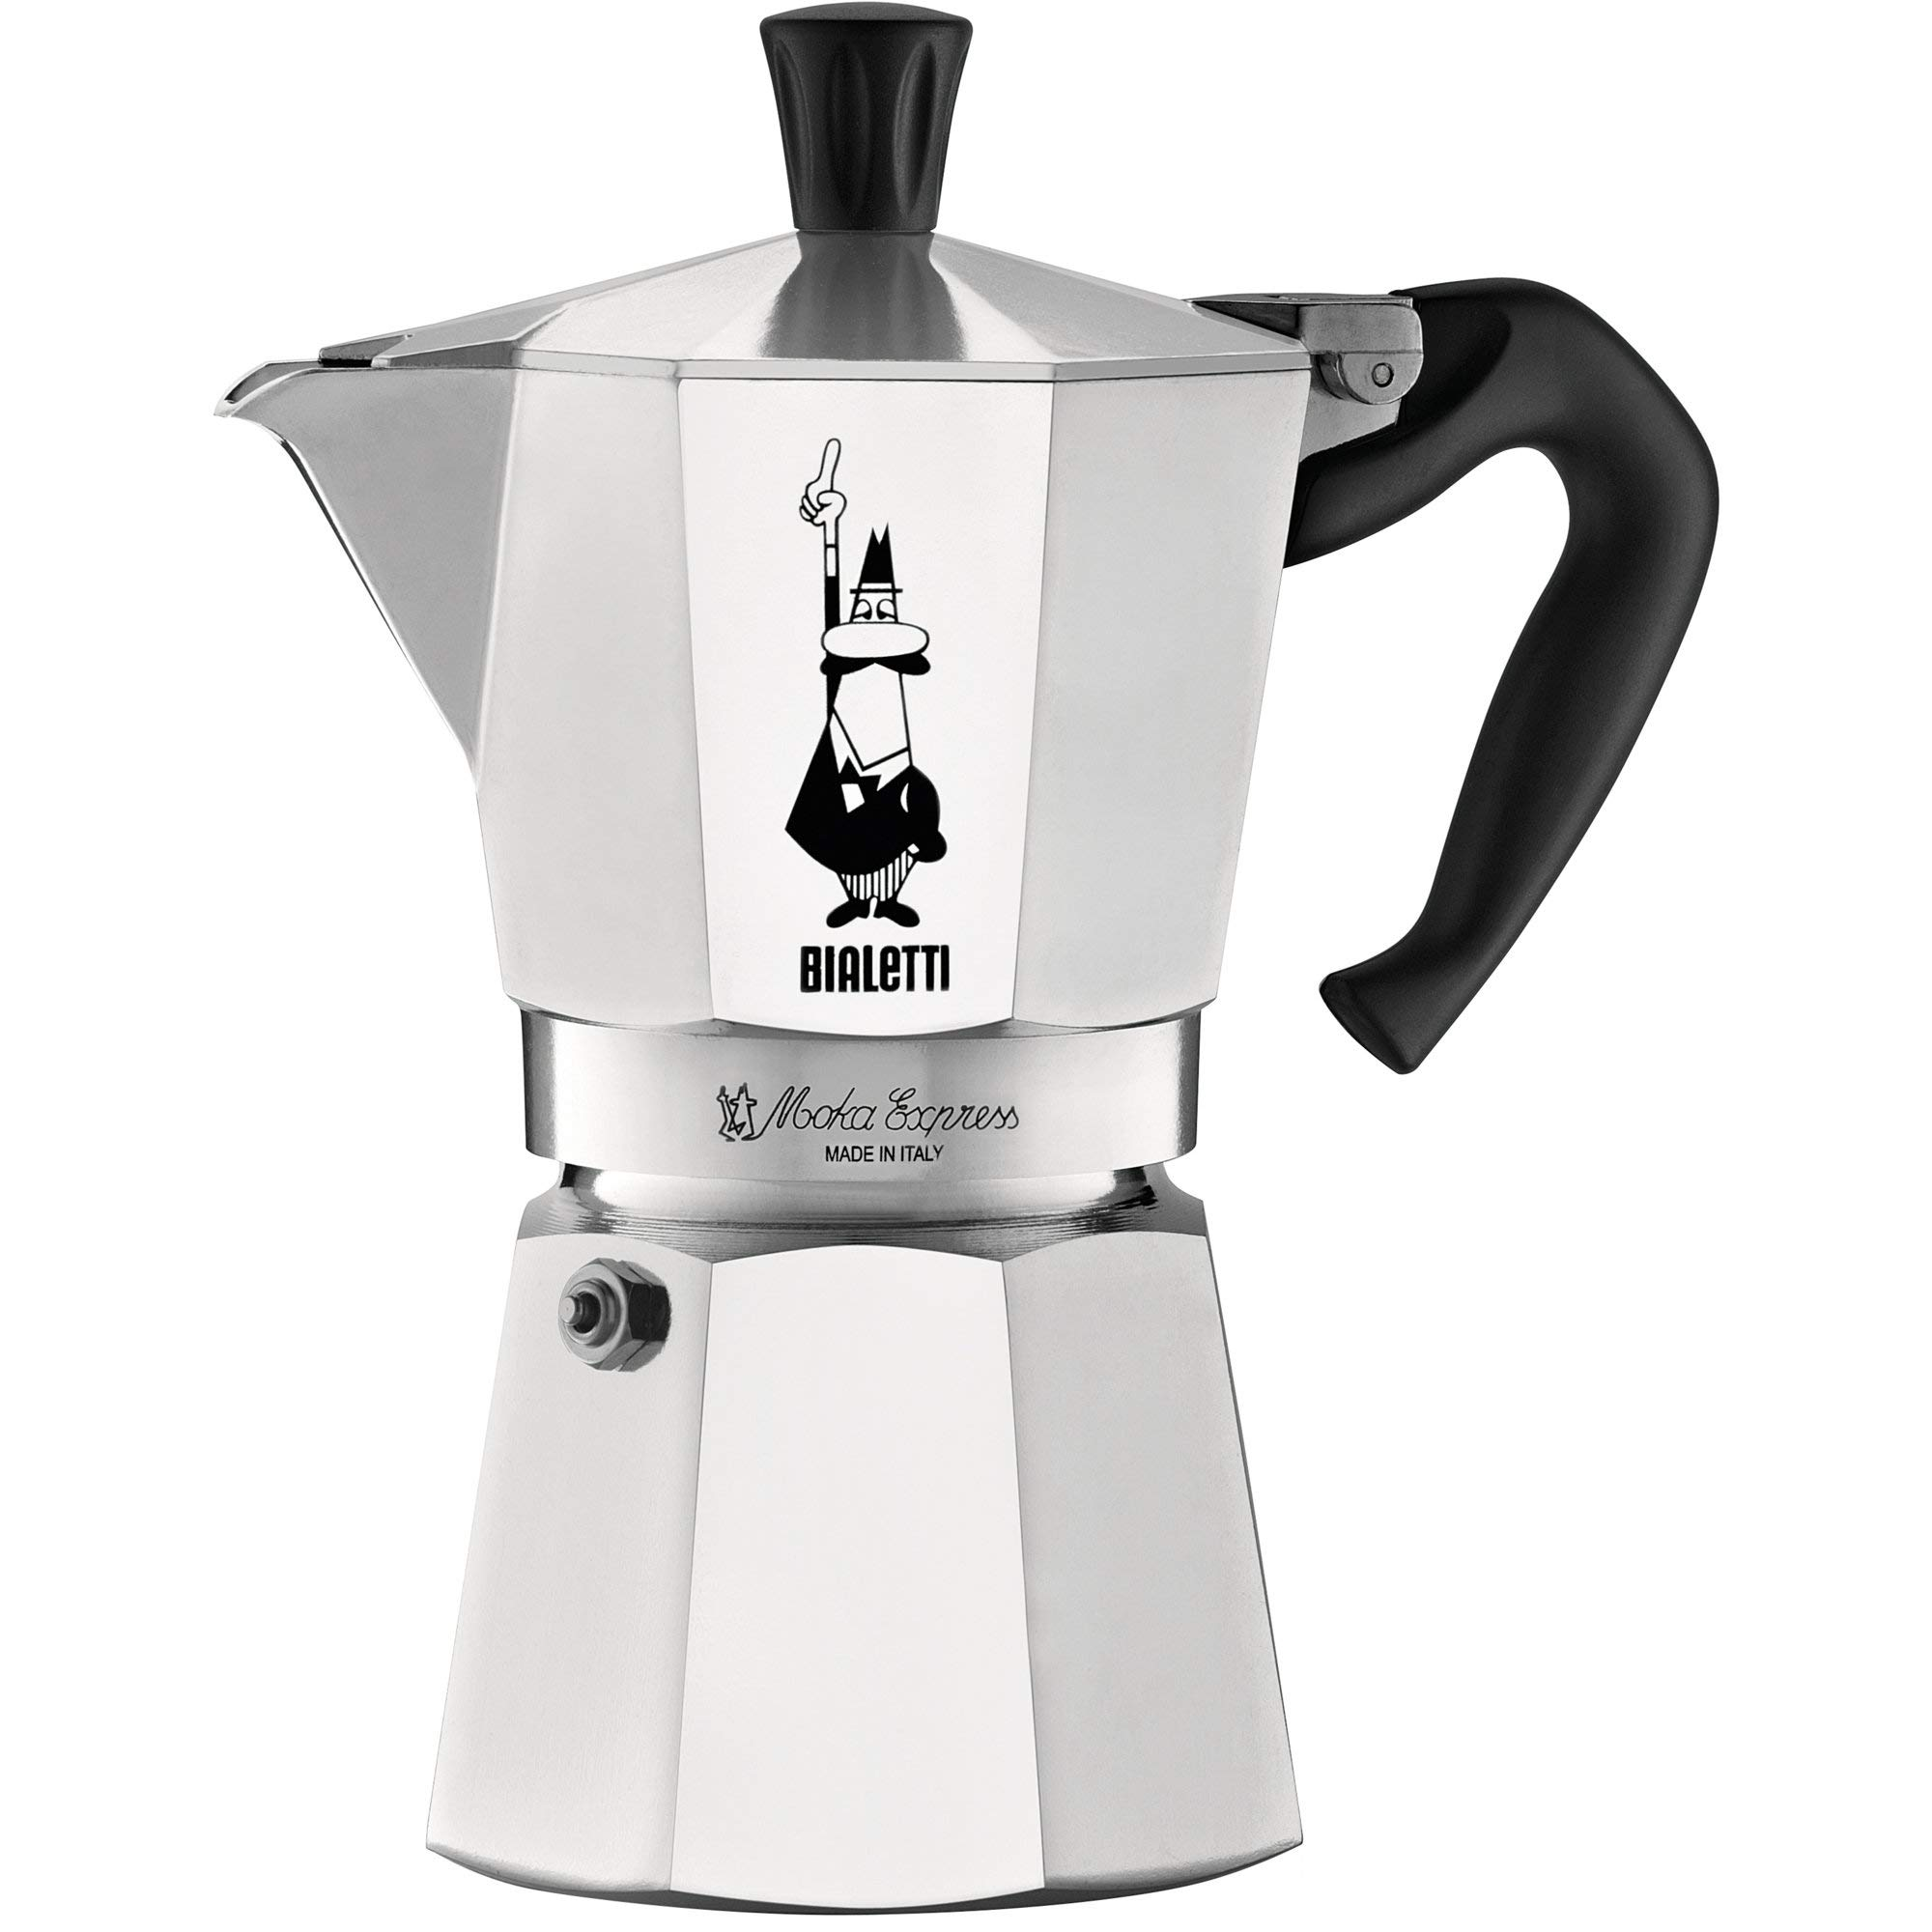 The Original Bialetti Moka Express - 6 Cup Stovetop Coffee Maker with Safety Valve - brews 9.2 ounces (Renewed)